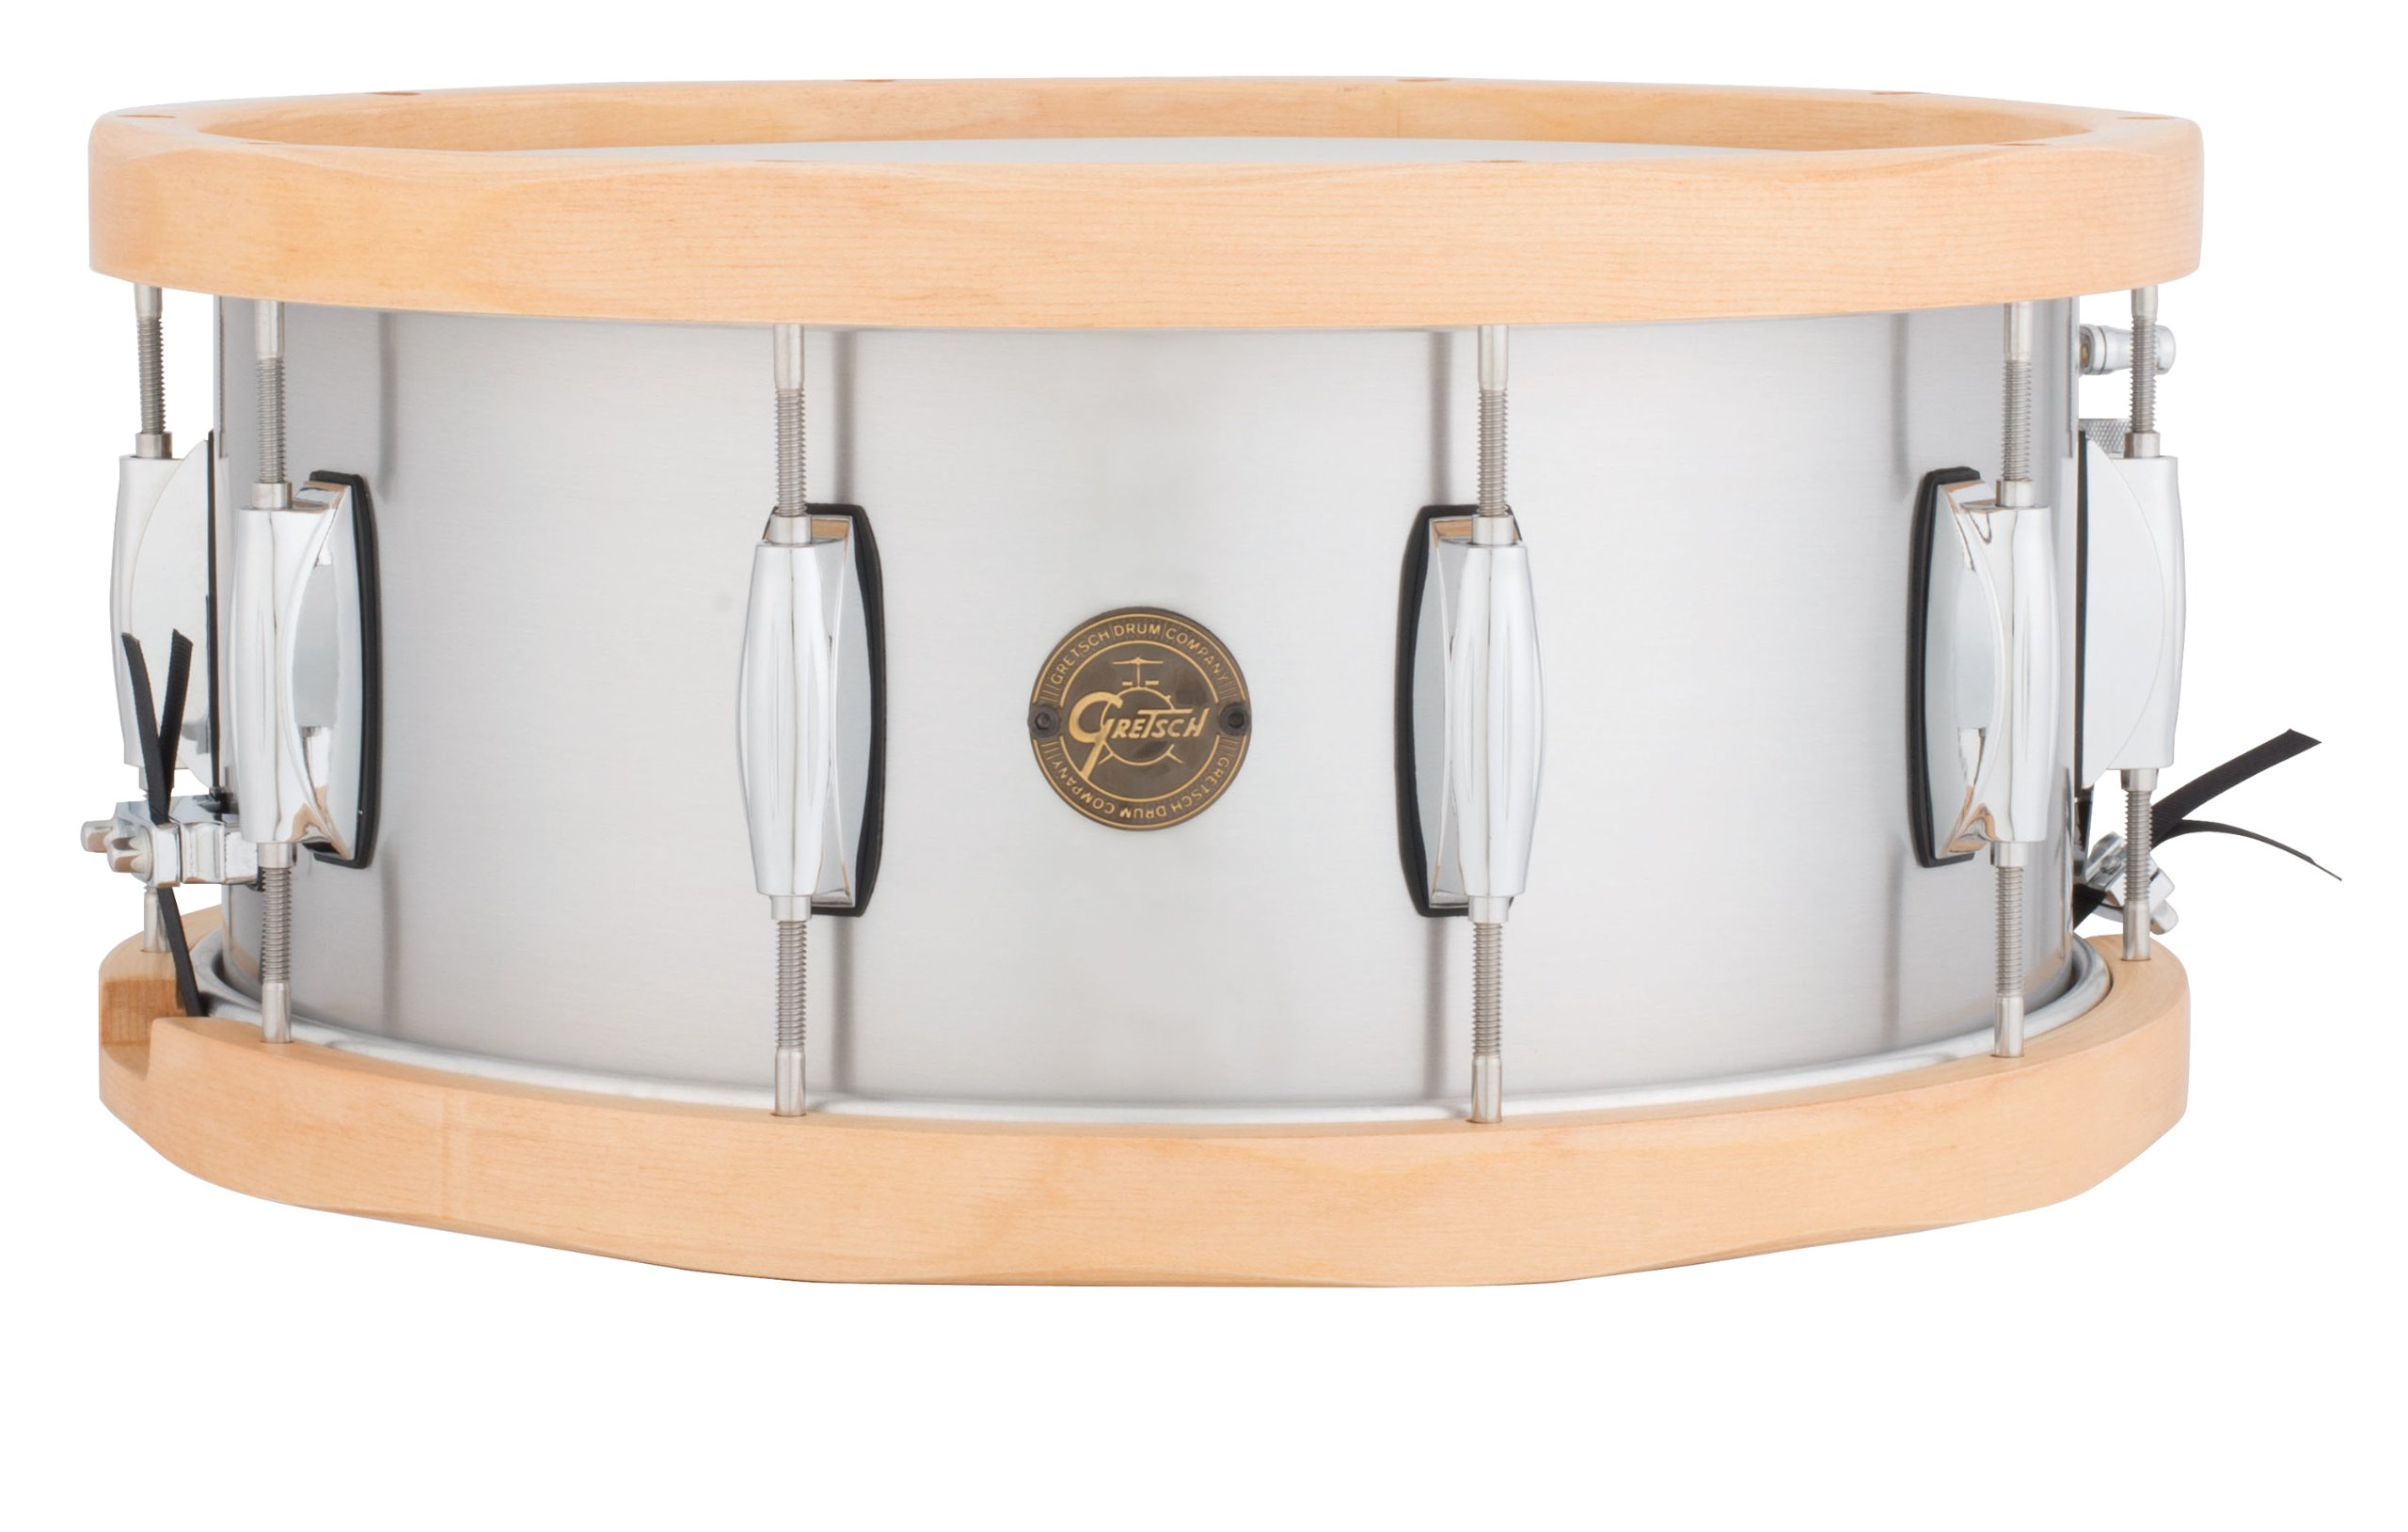 Gretsch Drums Gold Series S1-6514A-WH 14-Inch Snare Drum, Satin